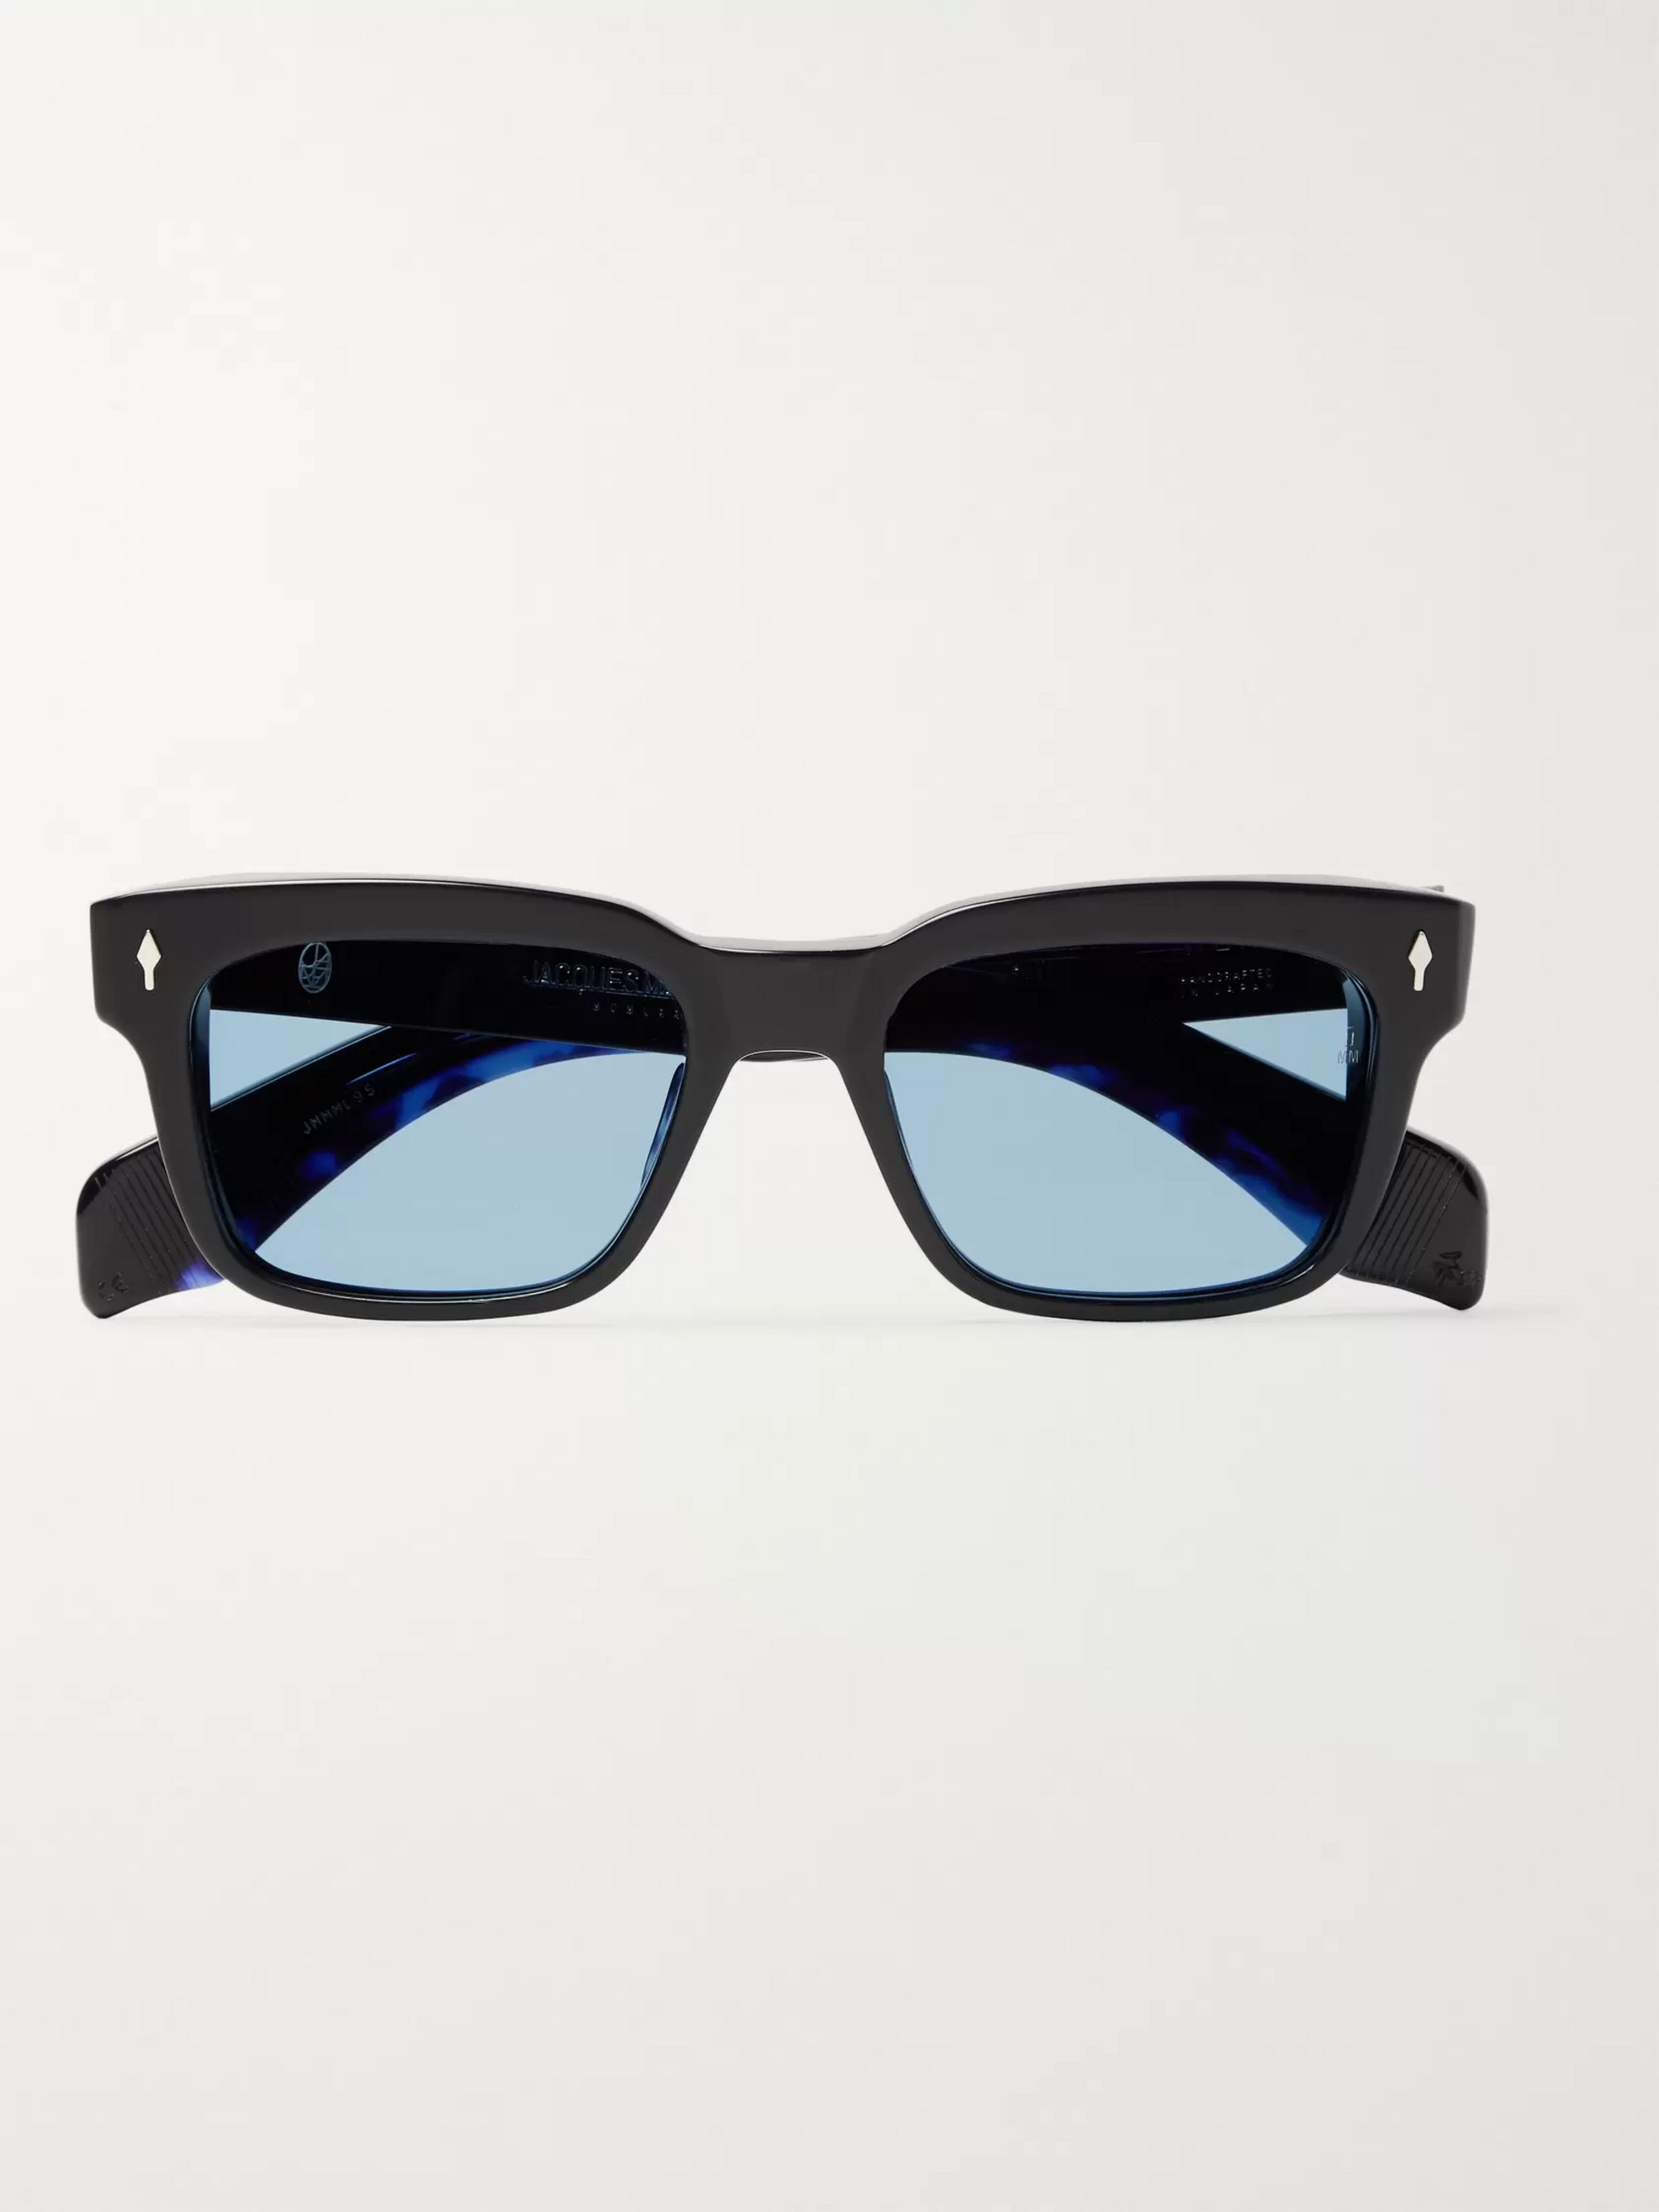 Jacques Marie Mage Molino Square-Frame Acetate and Silver Sunglasses